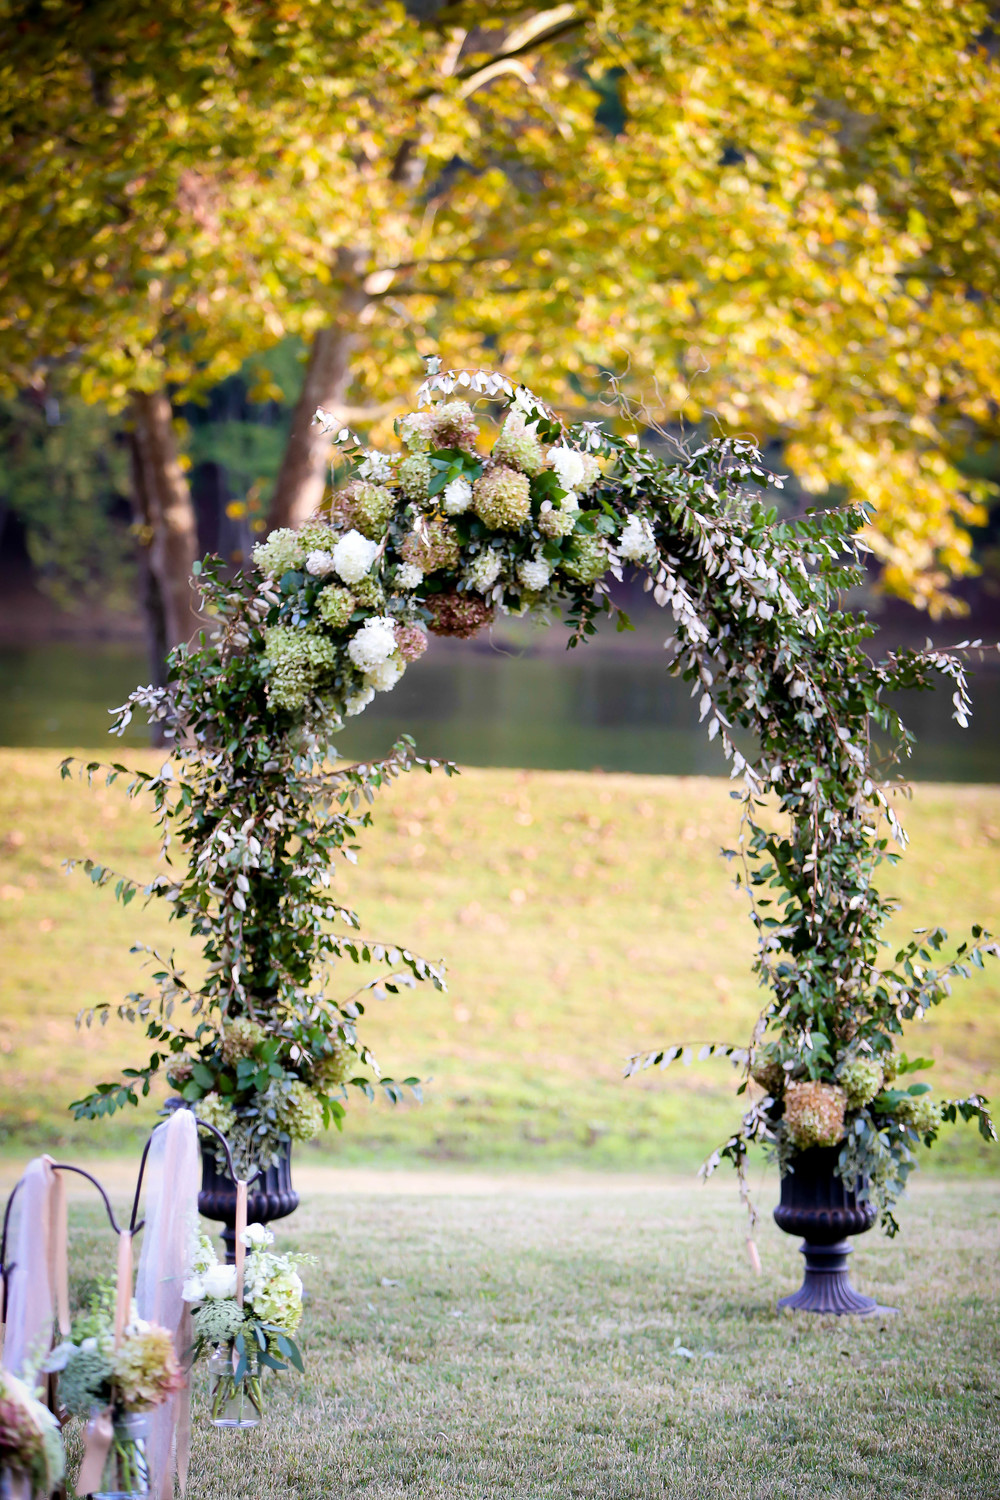 Weddings & Event Floral Services